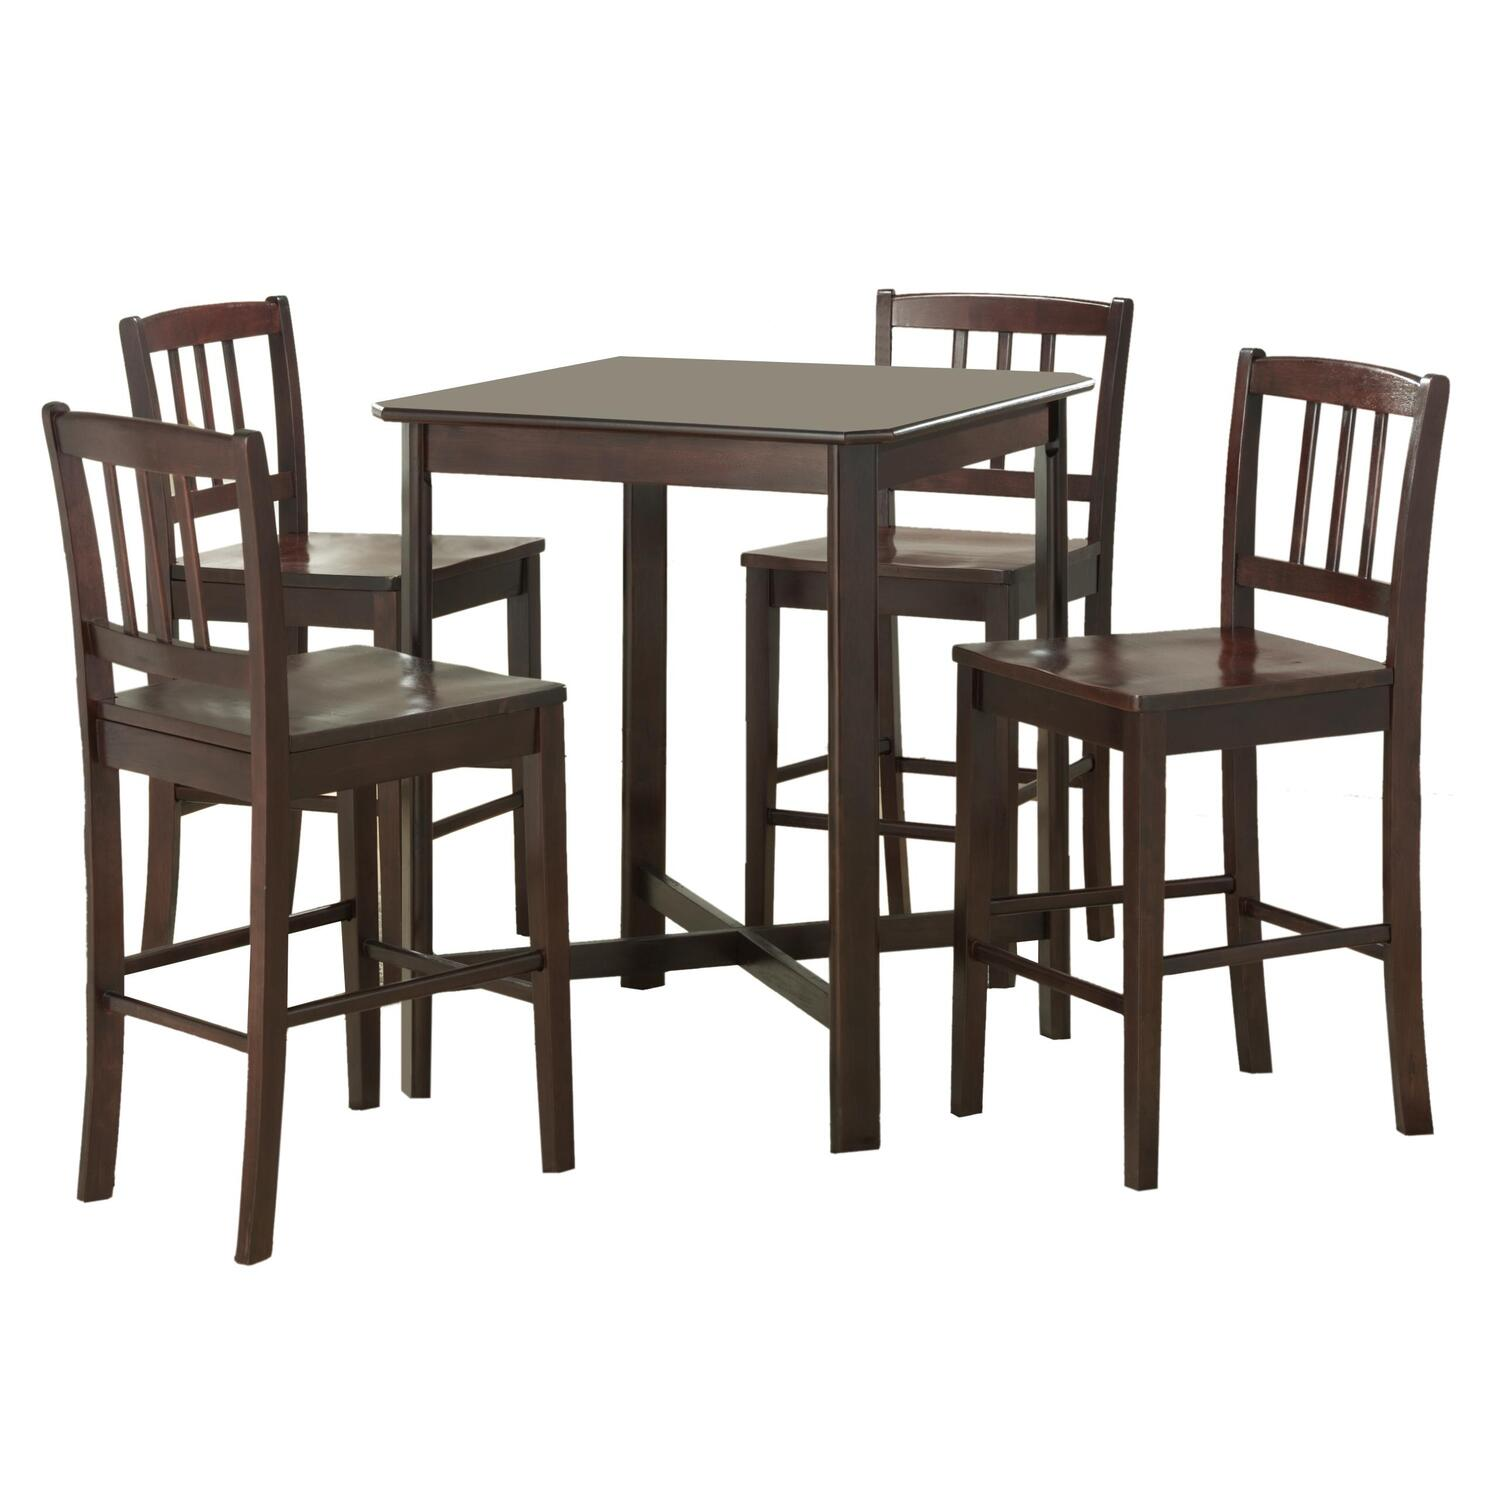 Wood Pub Set ~ Wood pub table sets home decorating ideas